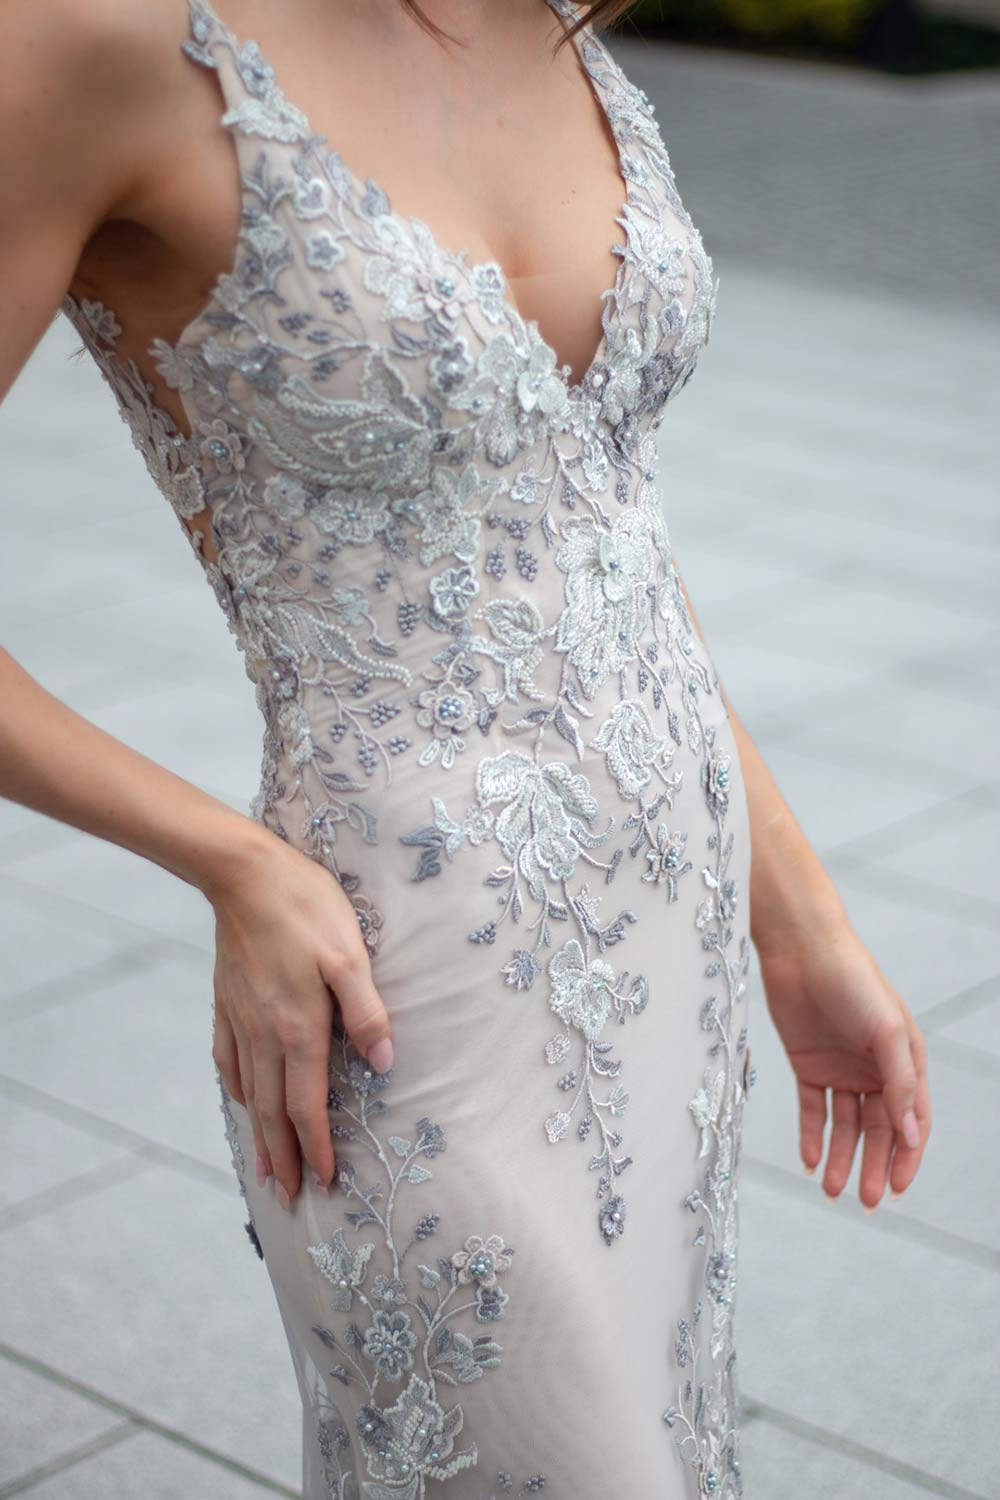 Female model wearing Vinka Design An Oriental Affair Wedding Dress. At a japanese temple in Kyoto the front detail of a slender silhouette form-fitting gown with a low sheer back, deep v-neckline and thin straps